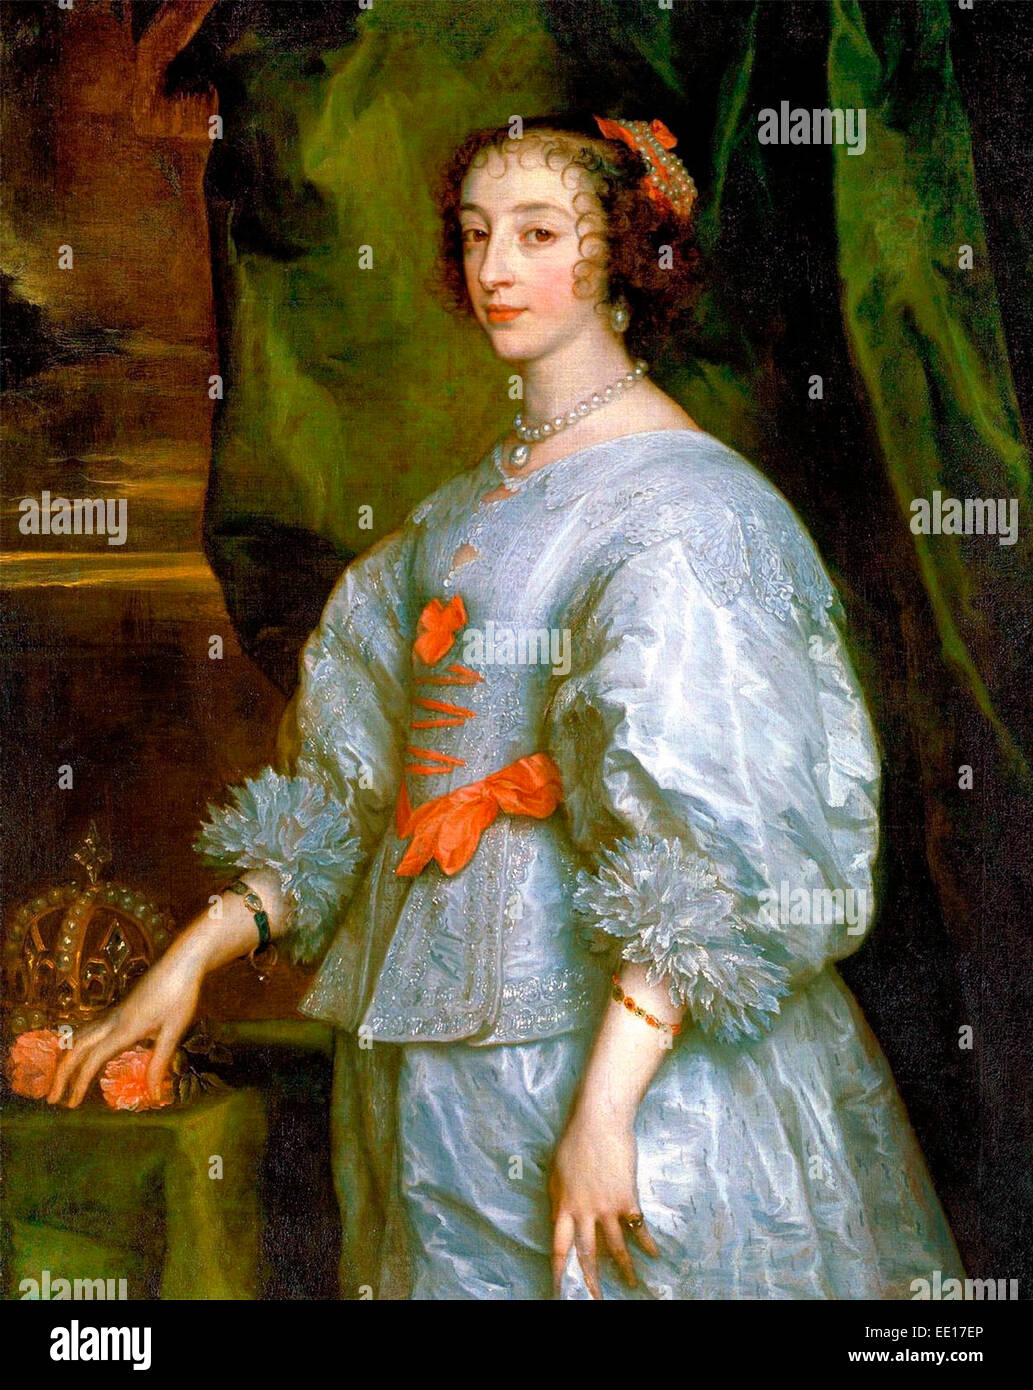 Princess Henrietta Maria of France, Queen consort of England. Anthony van Dyck, 1632 - Stock Image